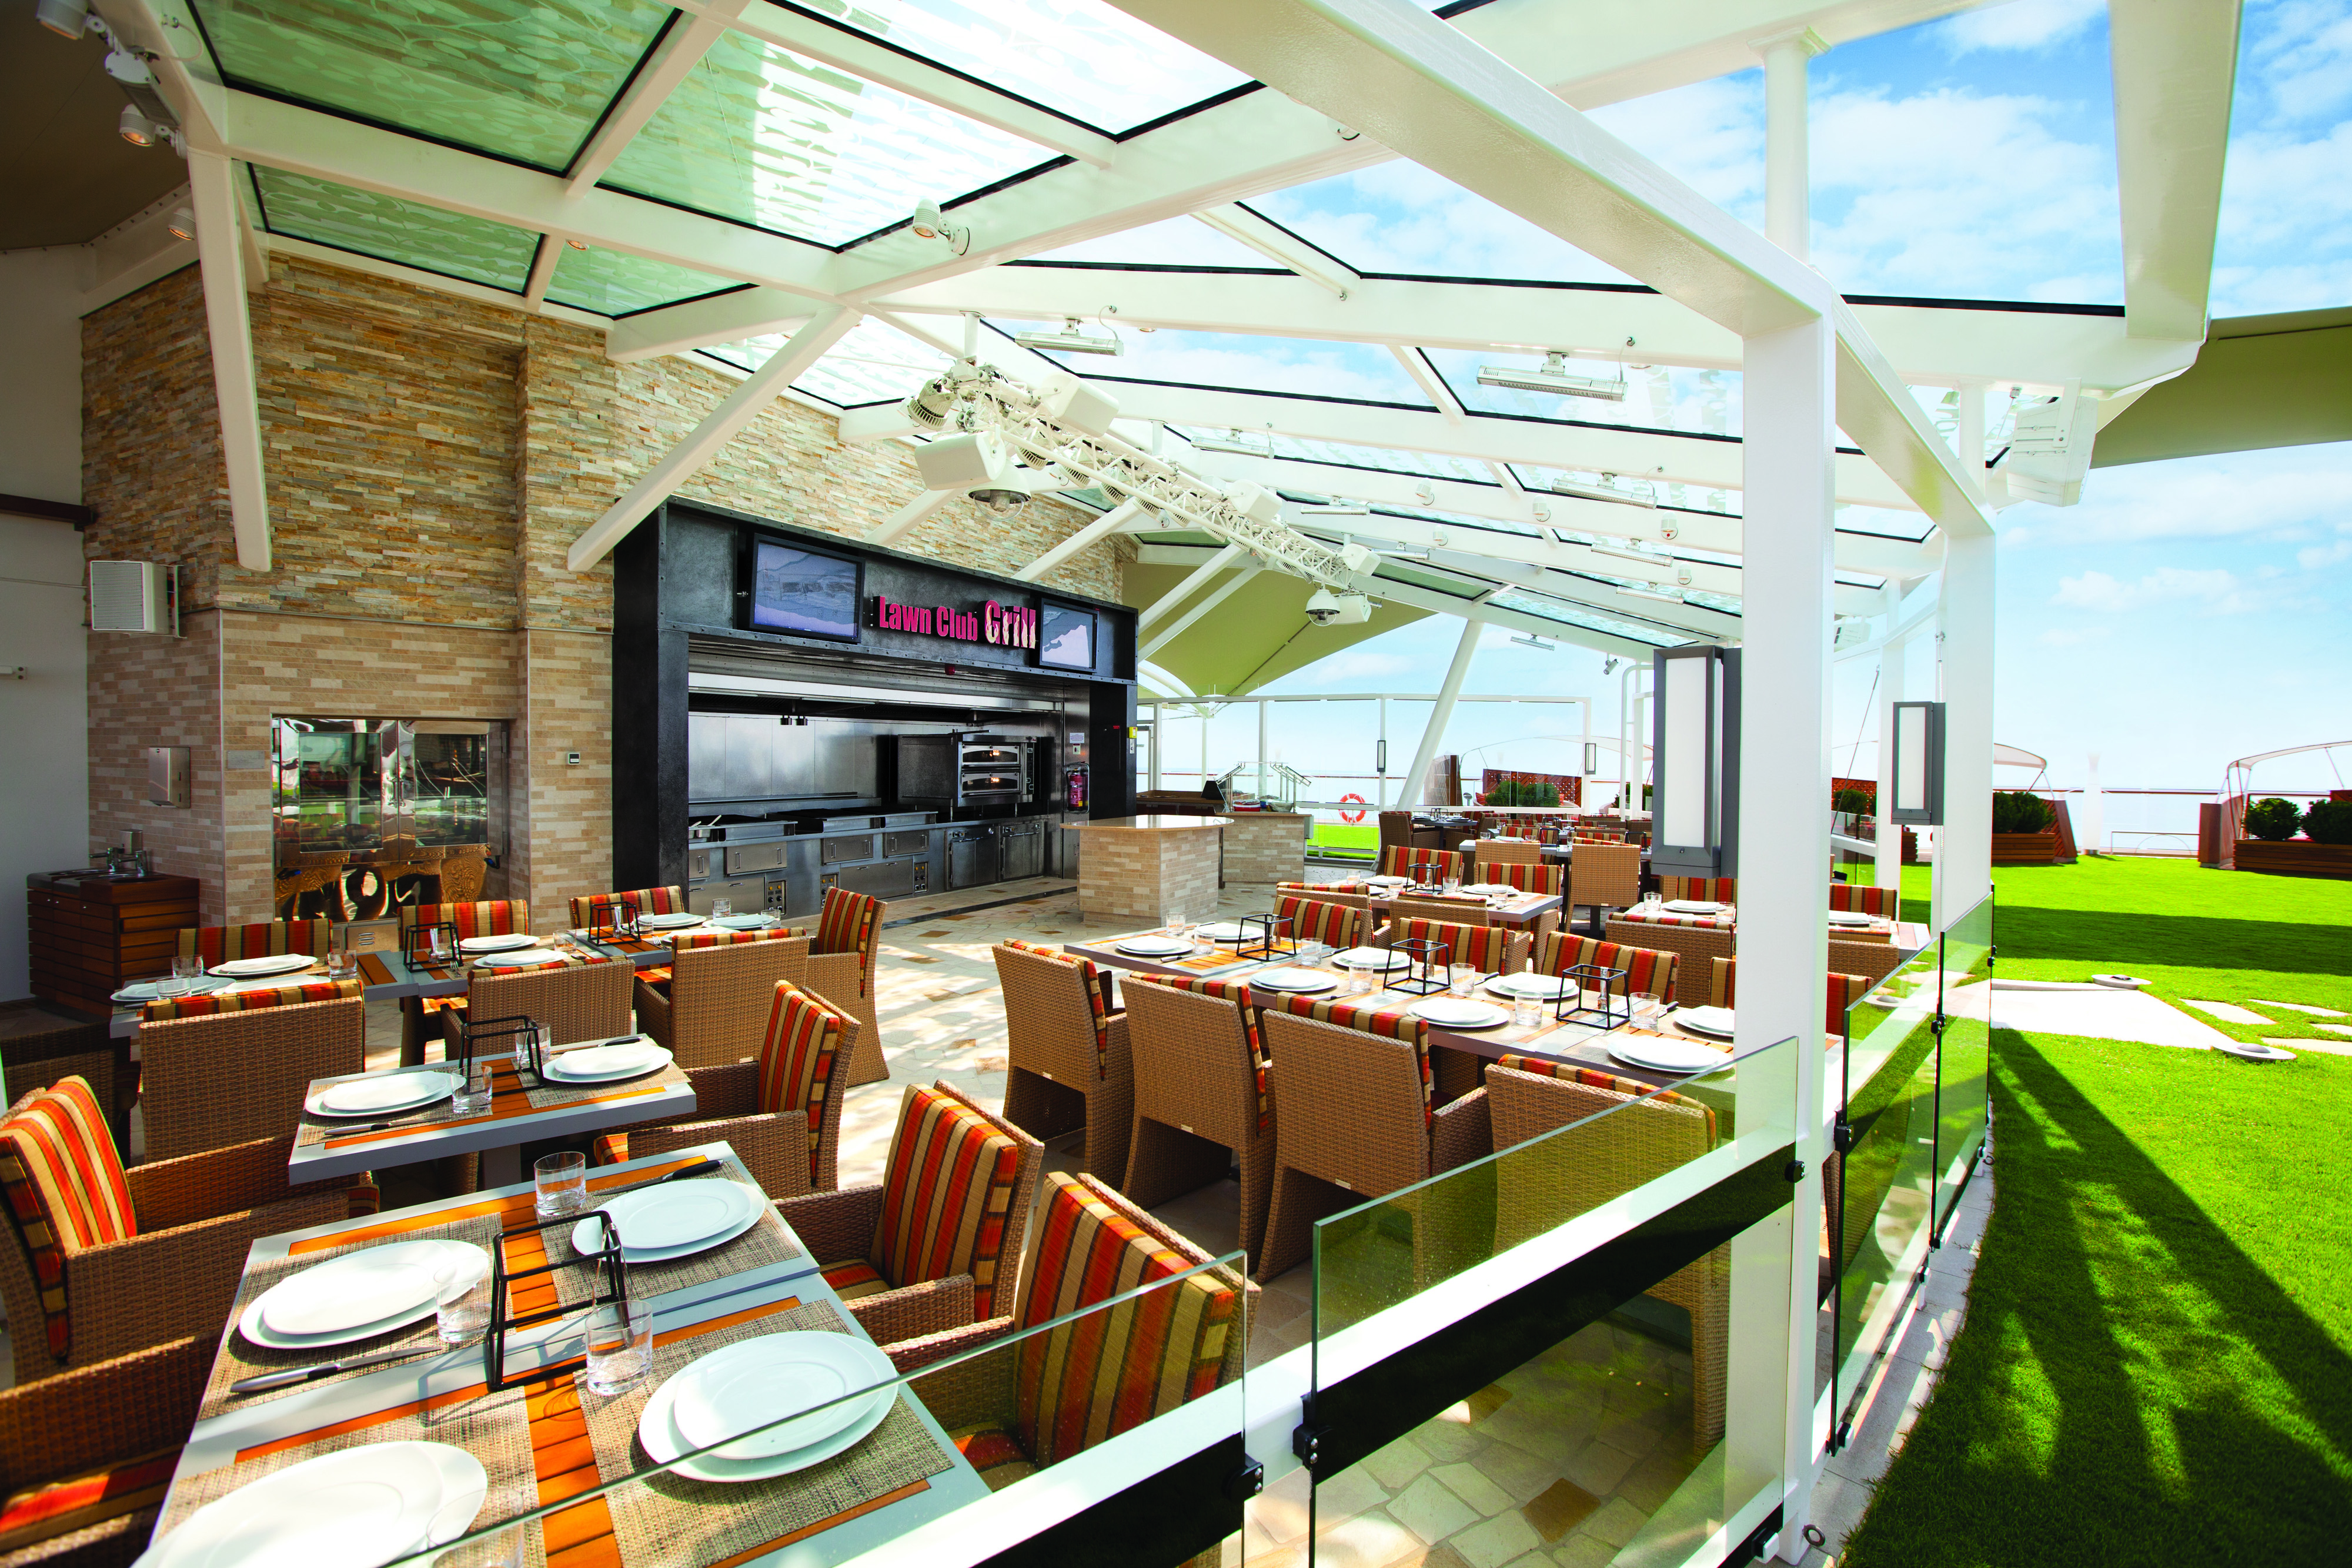 Celebrity Cruises Celebrity Silhouette Exterior Lawn Club Grill.jpg